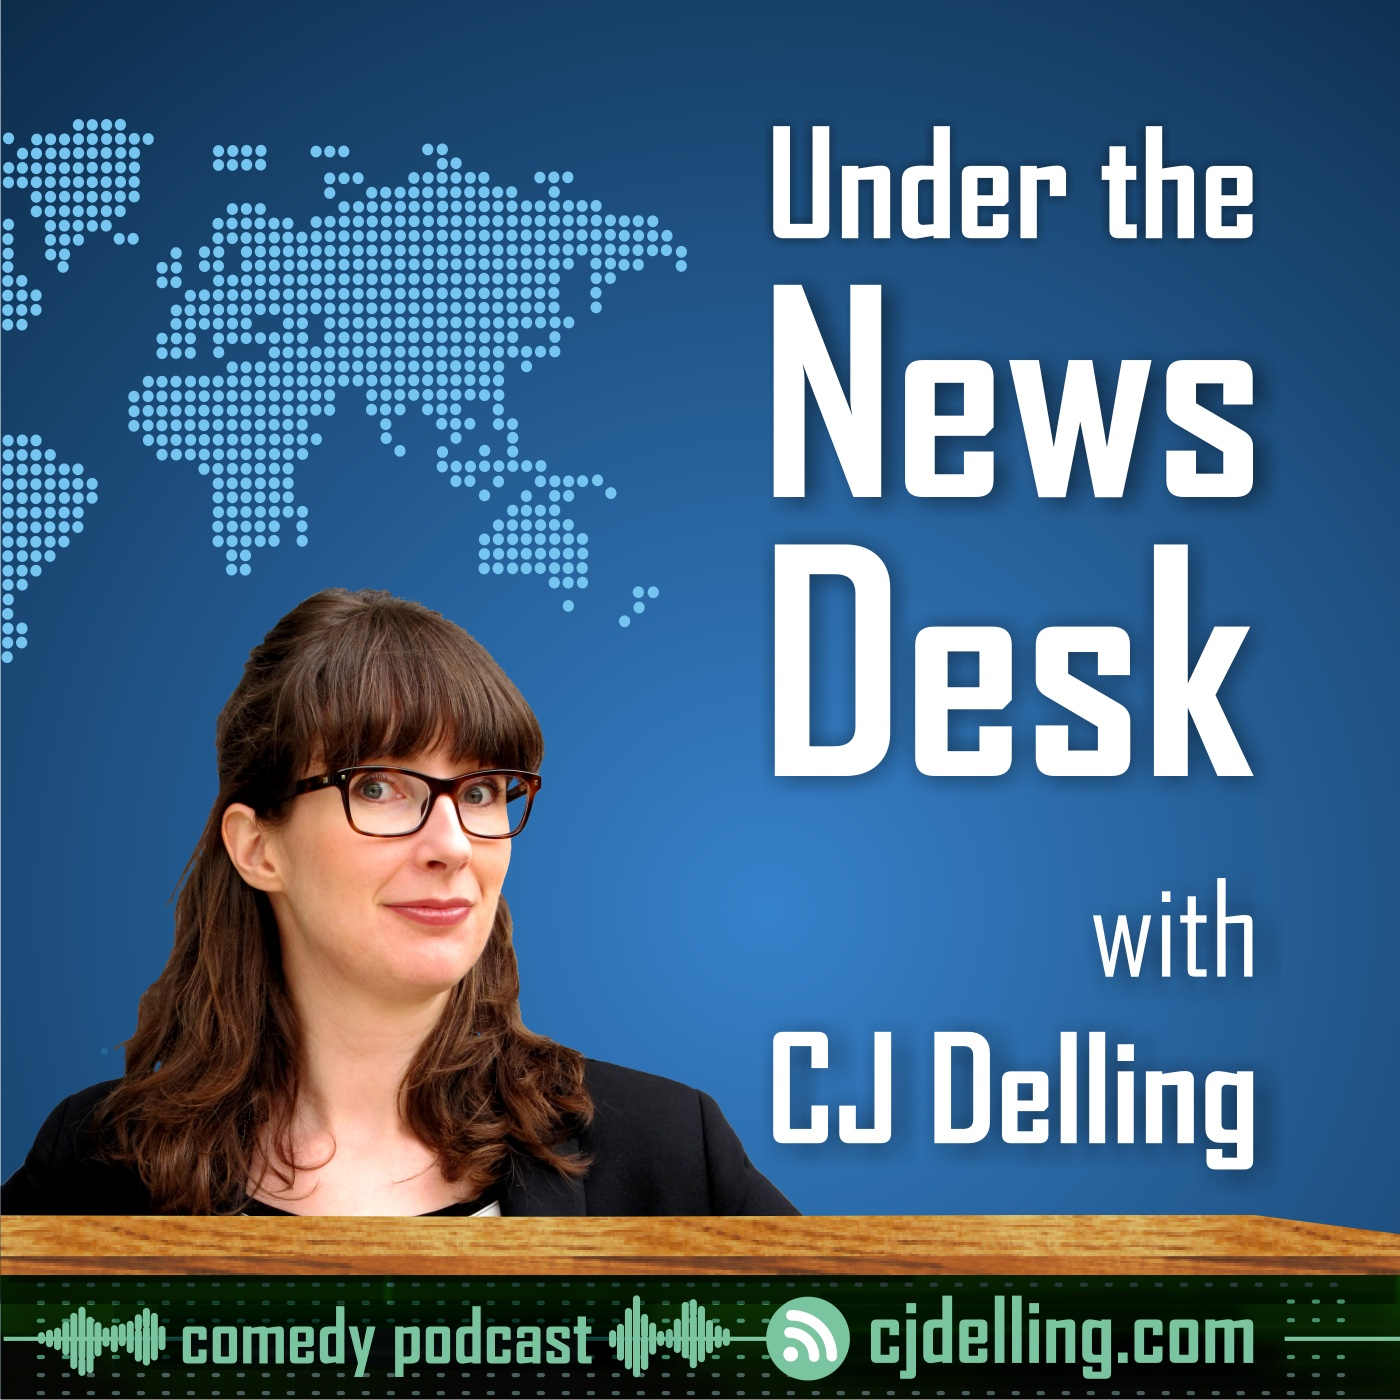 Under the News Desk with CJ Delling